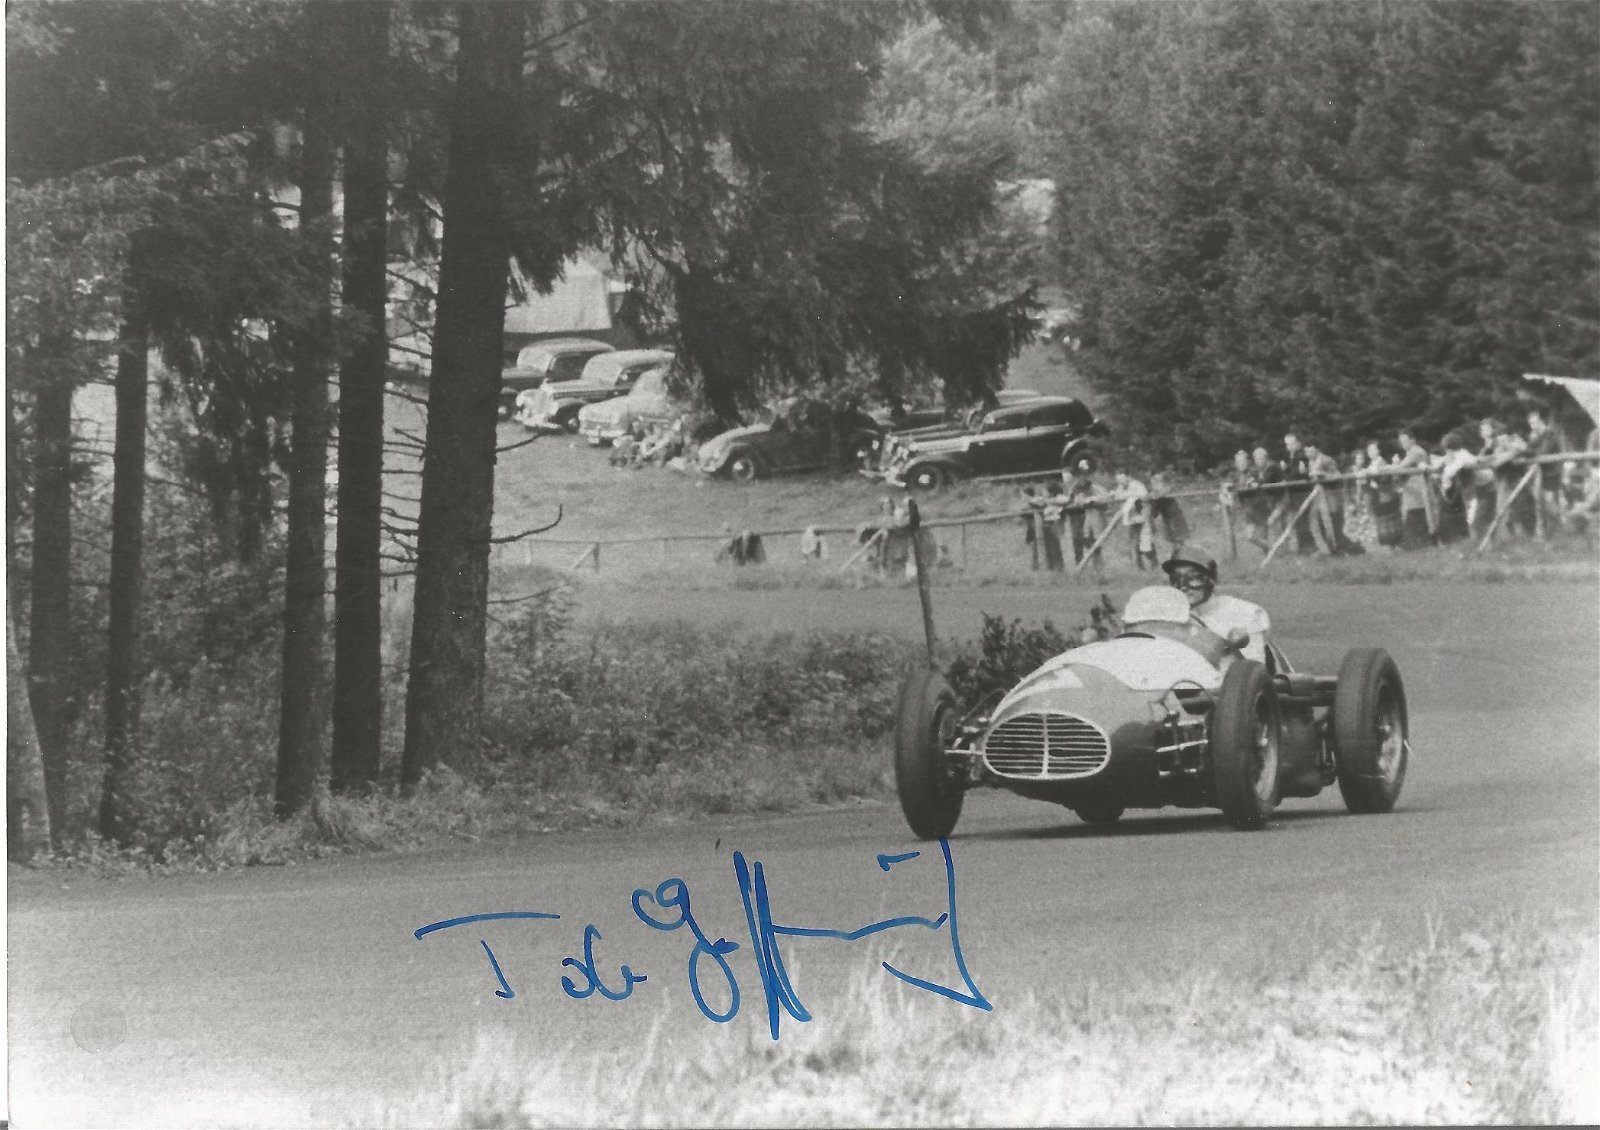 Motor Racing Toulo de Graffenried signed 5x7 black and